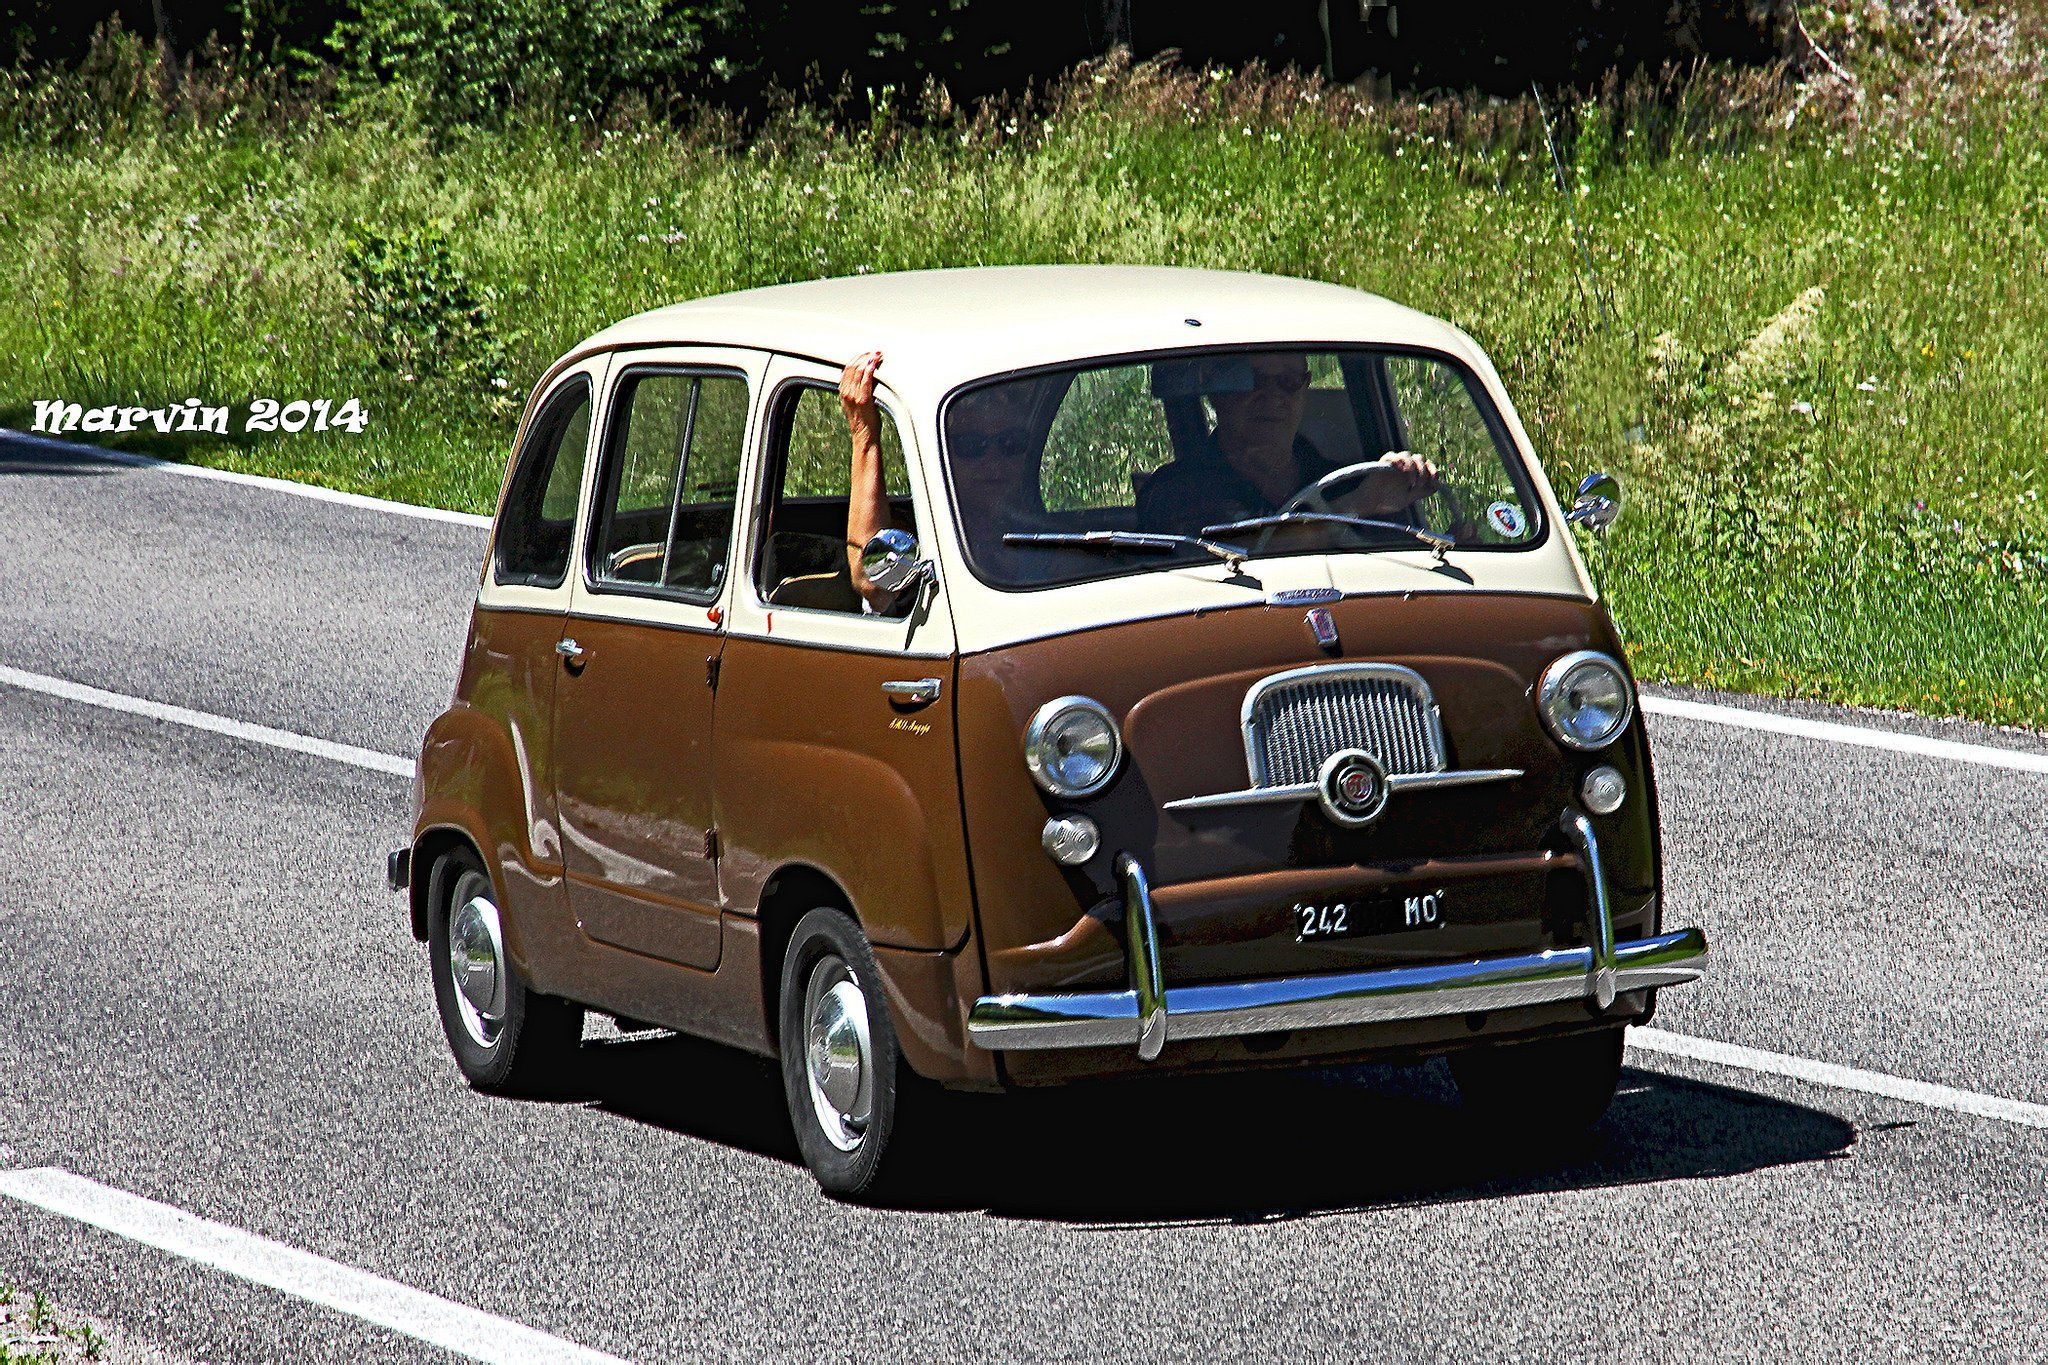 fiat 600 multipla interior 94 cars pinterest fiat 600 fiat and cars. Black Bedroom Furniture Sets. Home Design Ideas